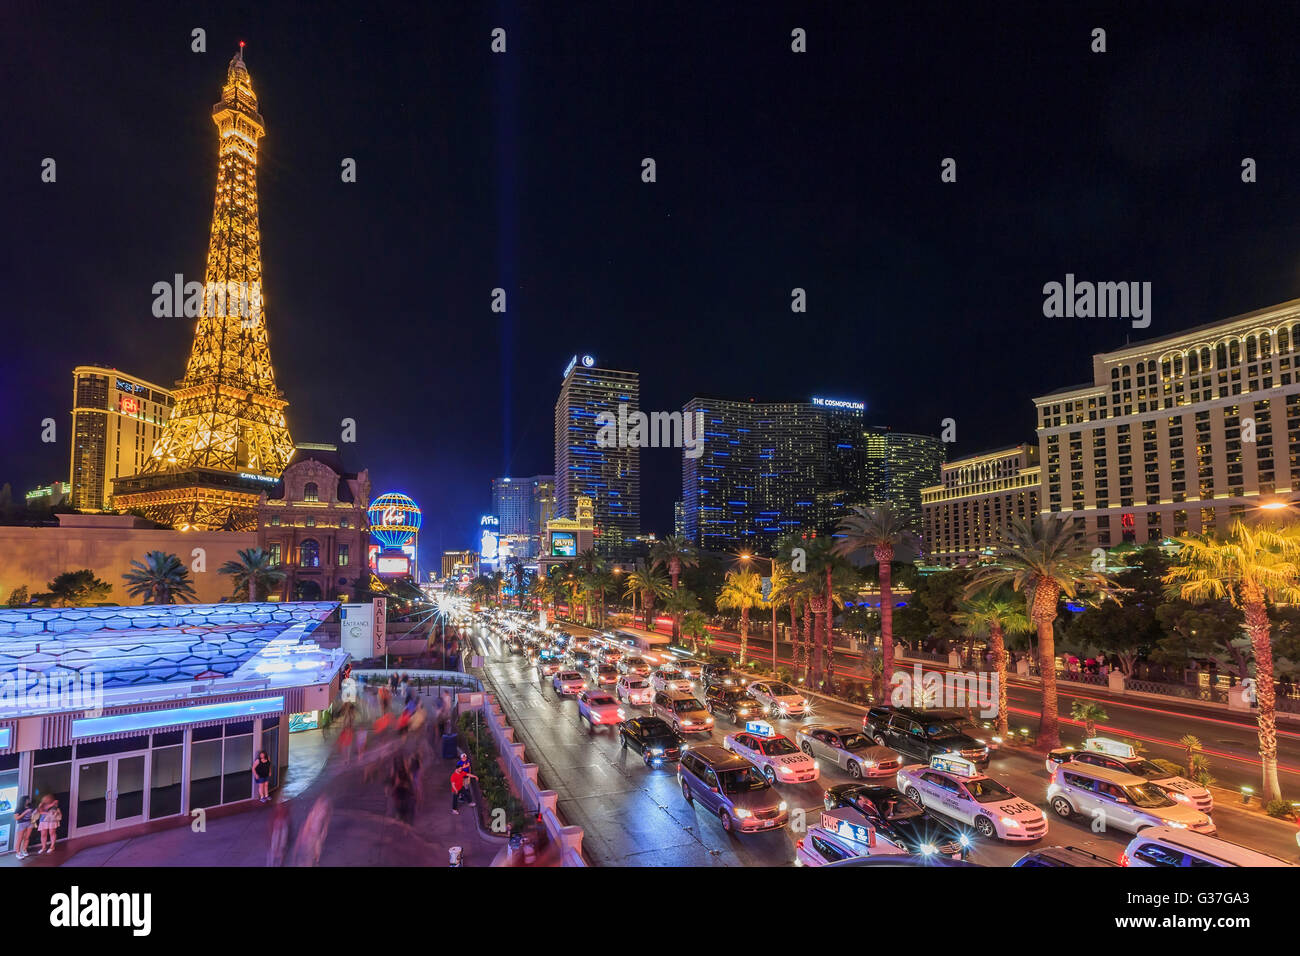 AUG 5, Las Vegas: The famous Paris Las Vegas Casino on AUG 5, 2015 at Las Vegas, Nevada - Stock Image